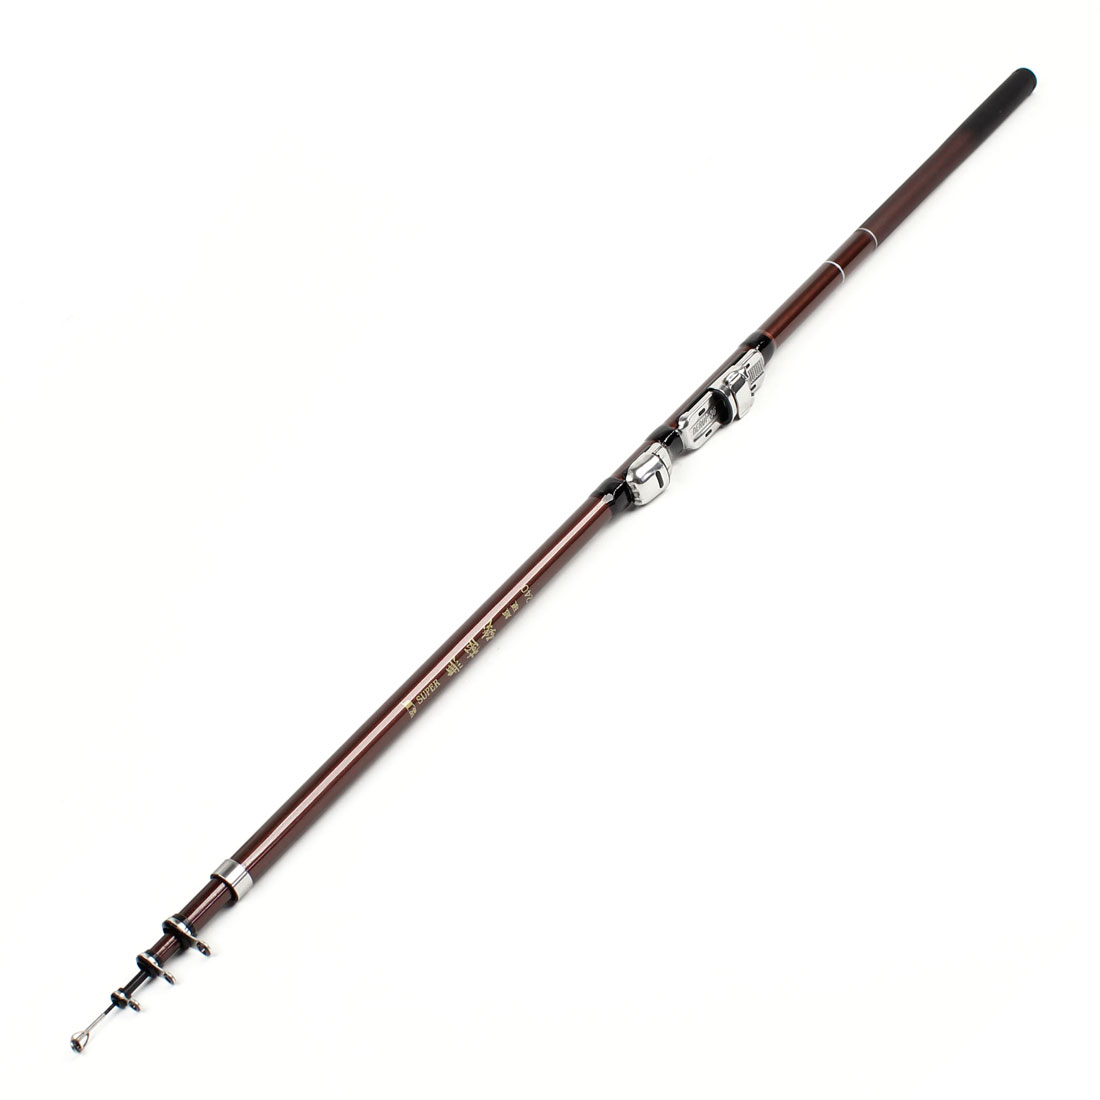 Portable Burgundy Carbon Fiber Telescopic 5 Section 7.5Ft Length Fishing Rod